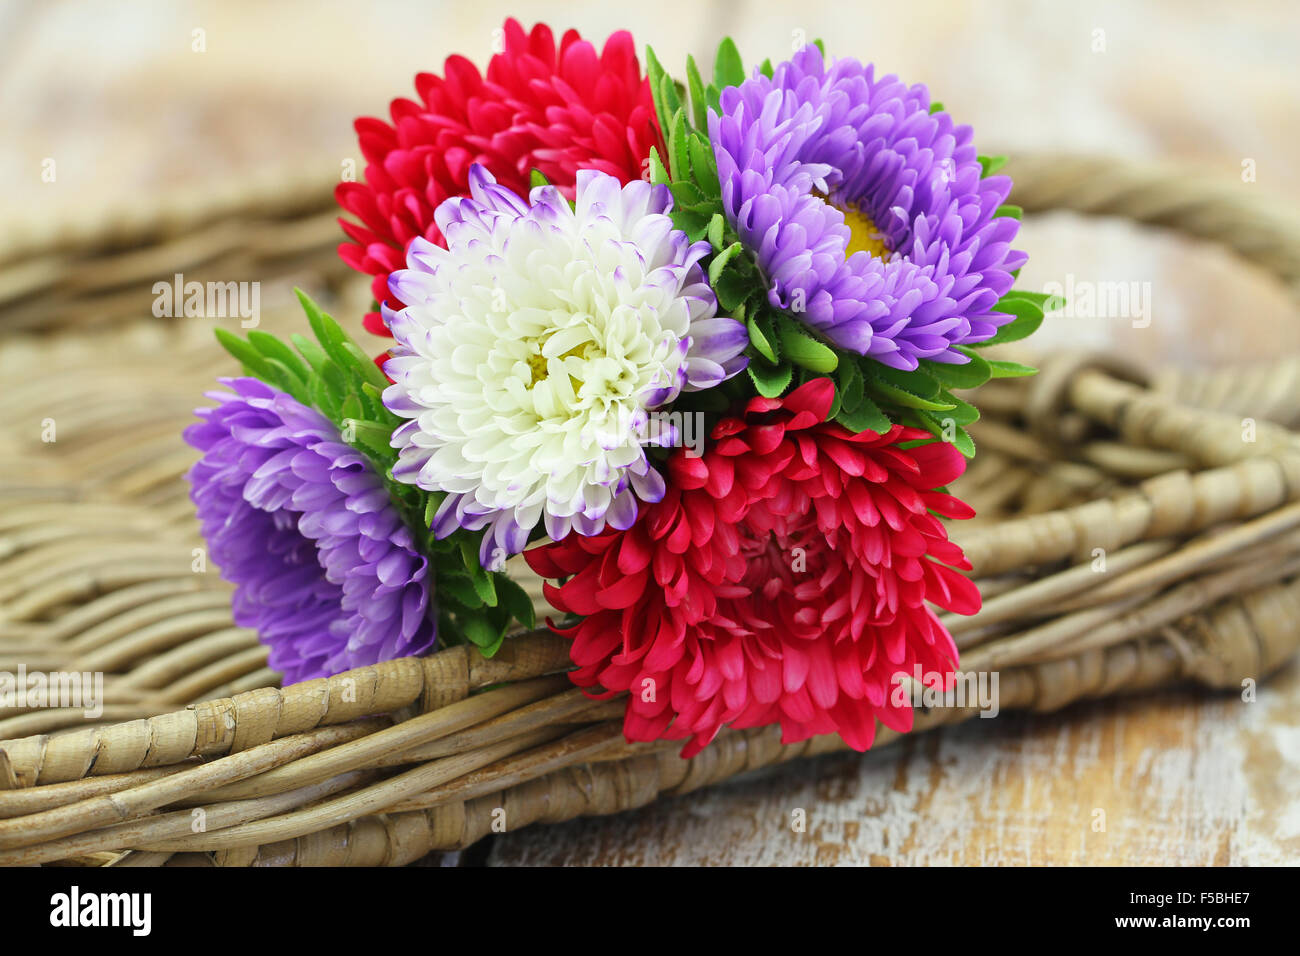 Colorful aster flower bouquet on wicker tray with copy space Stock ...